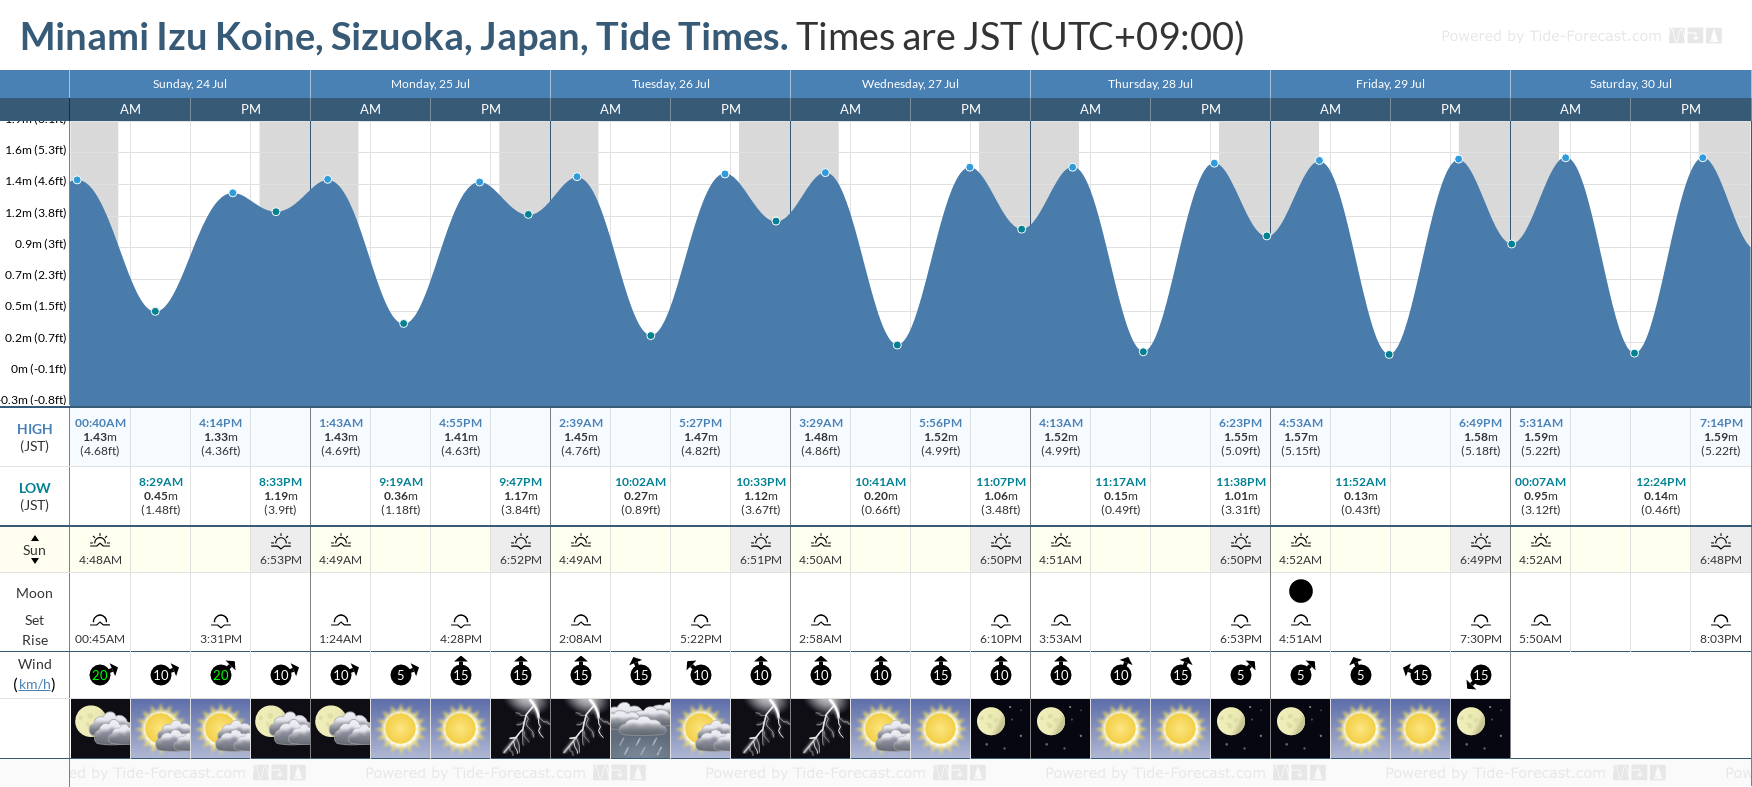 Minami Izu Koine, Sizuoka, Japan Tide Chart including high and low tide tide times for the next 7 days